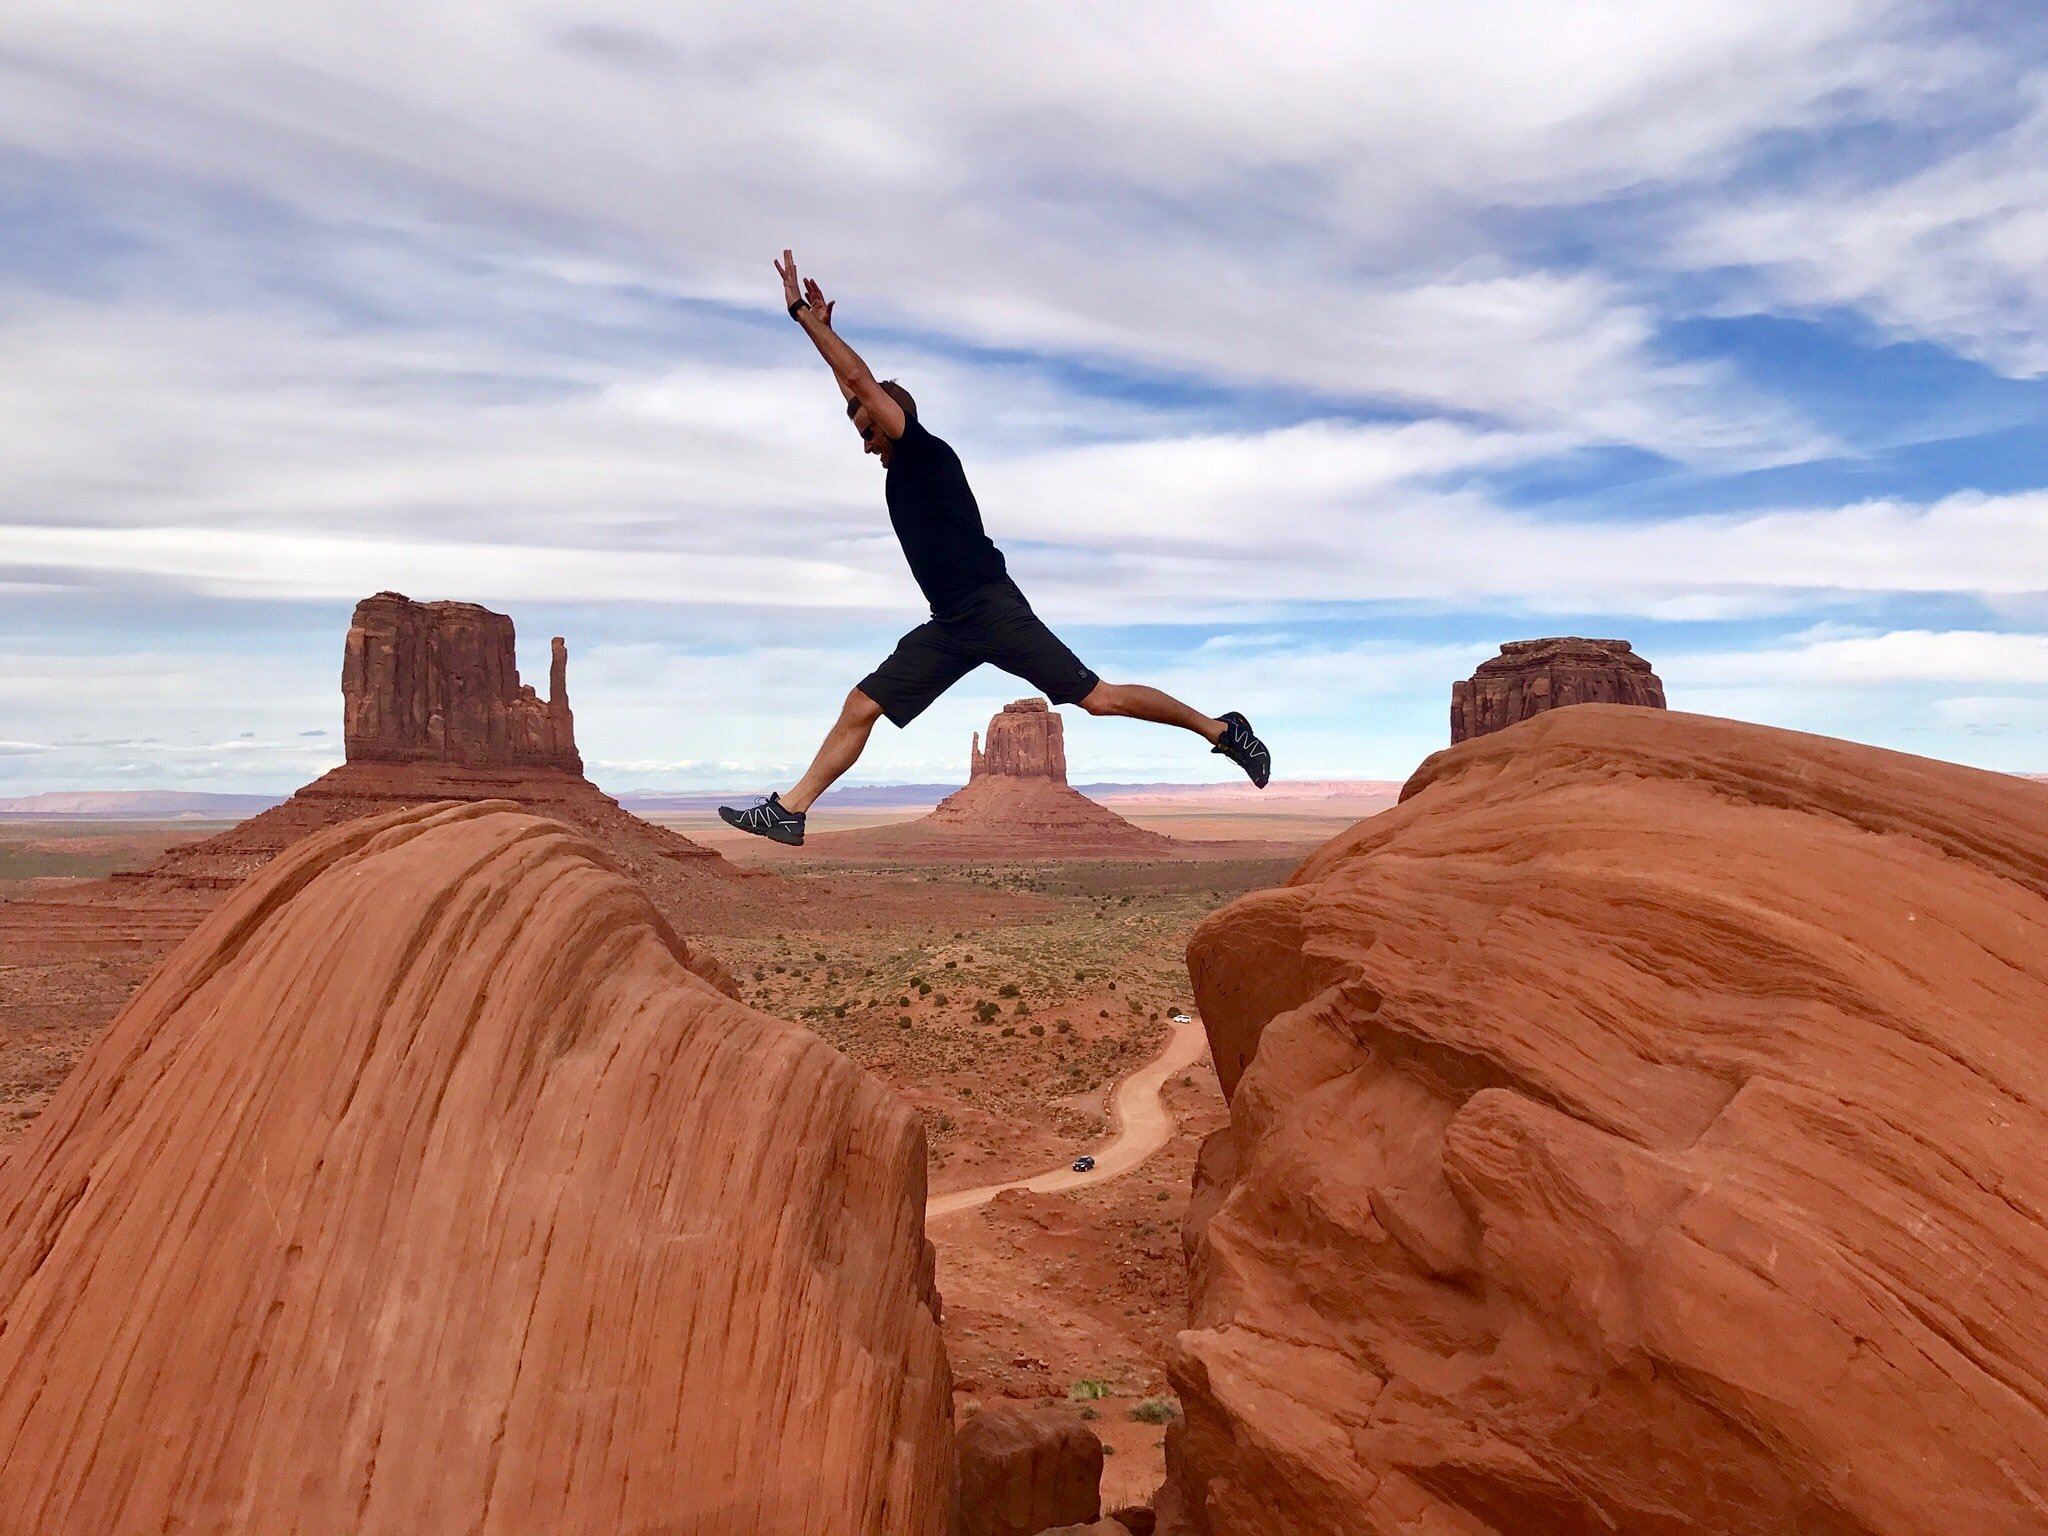 Man jumping rock formations in Utah with a gap between them.